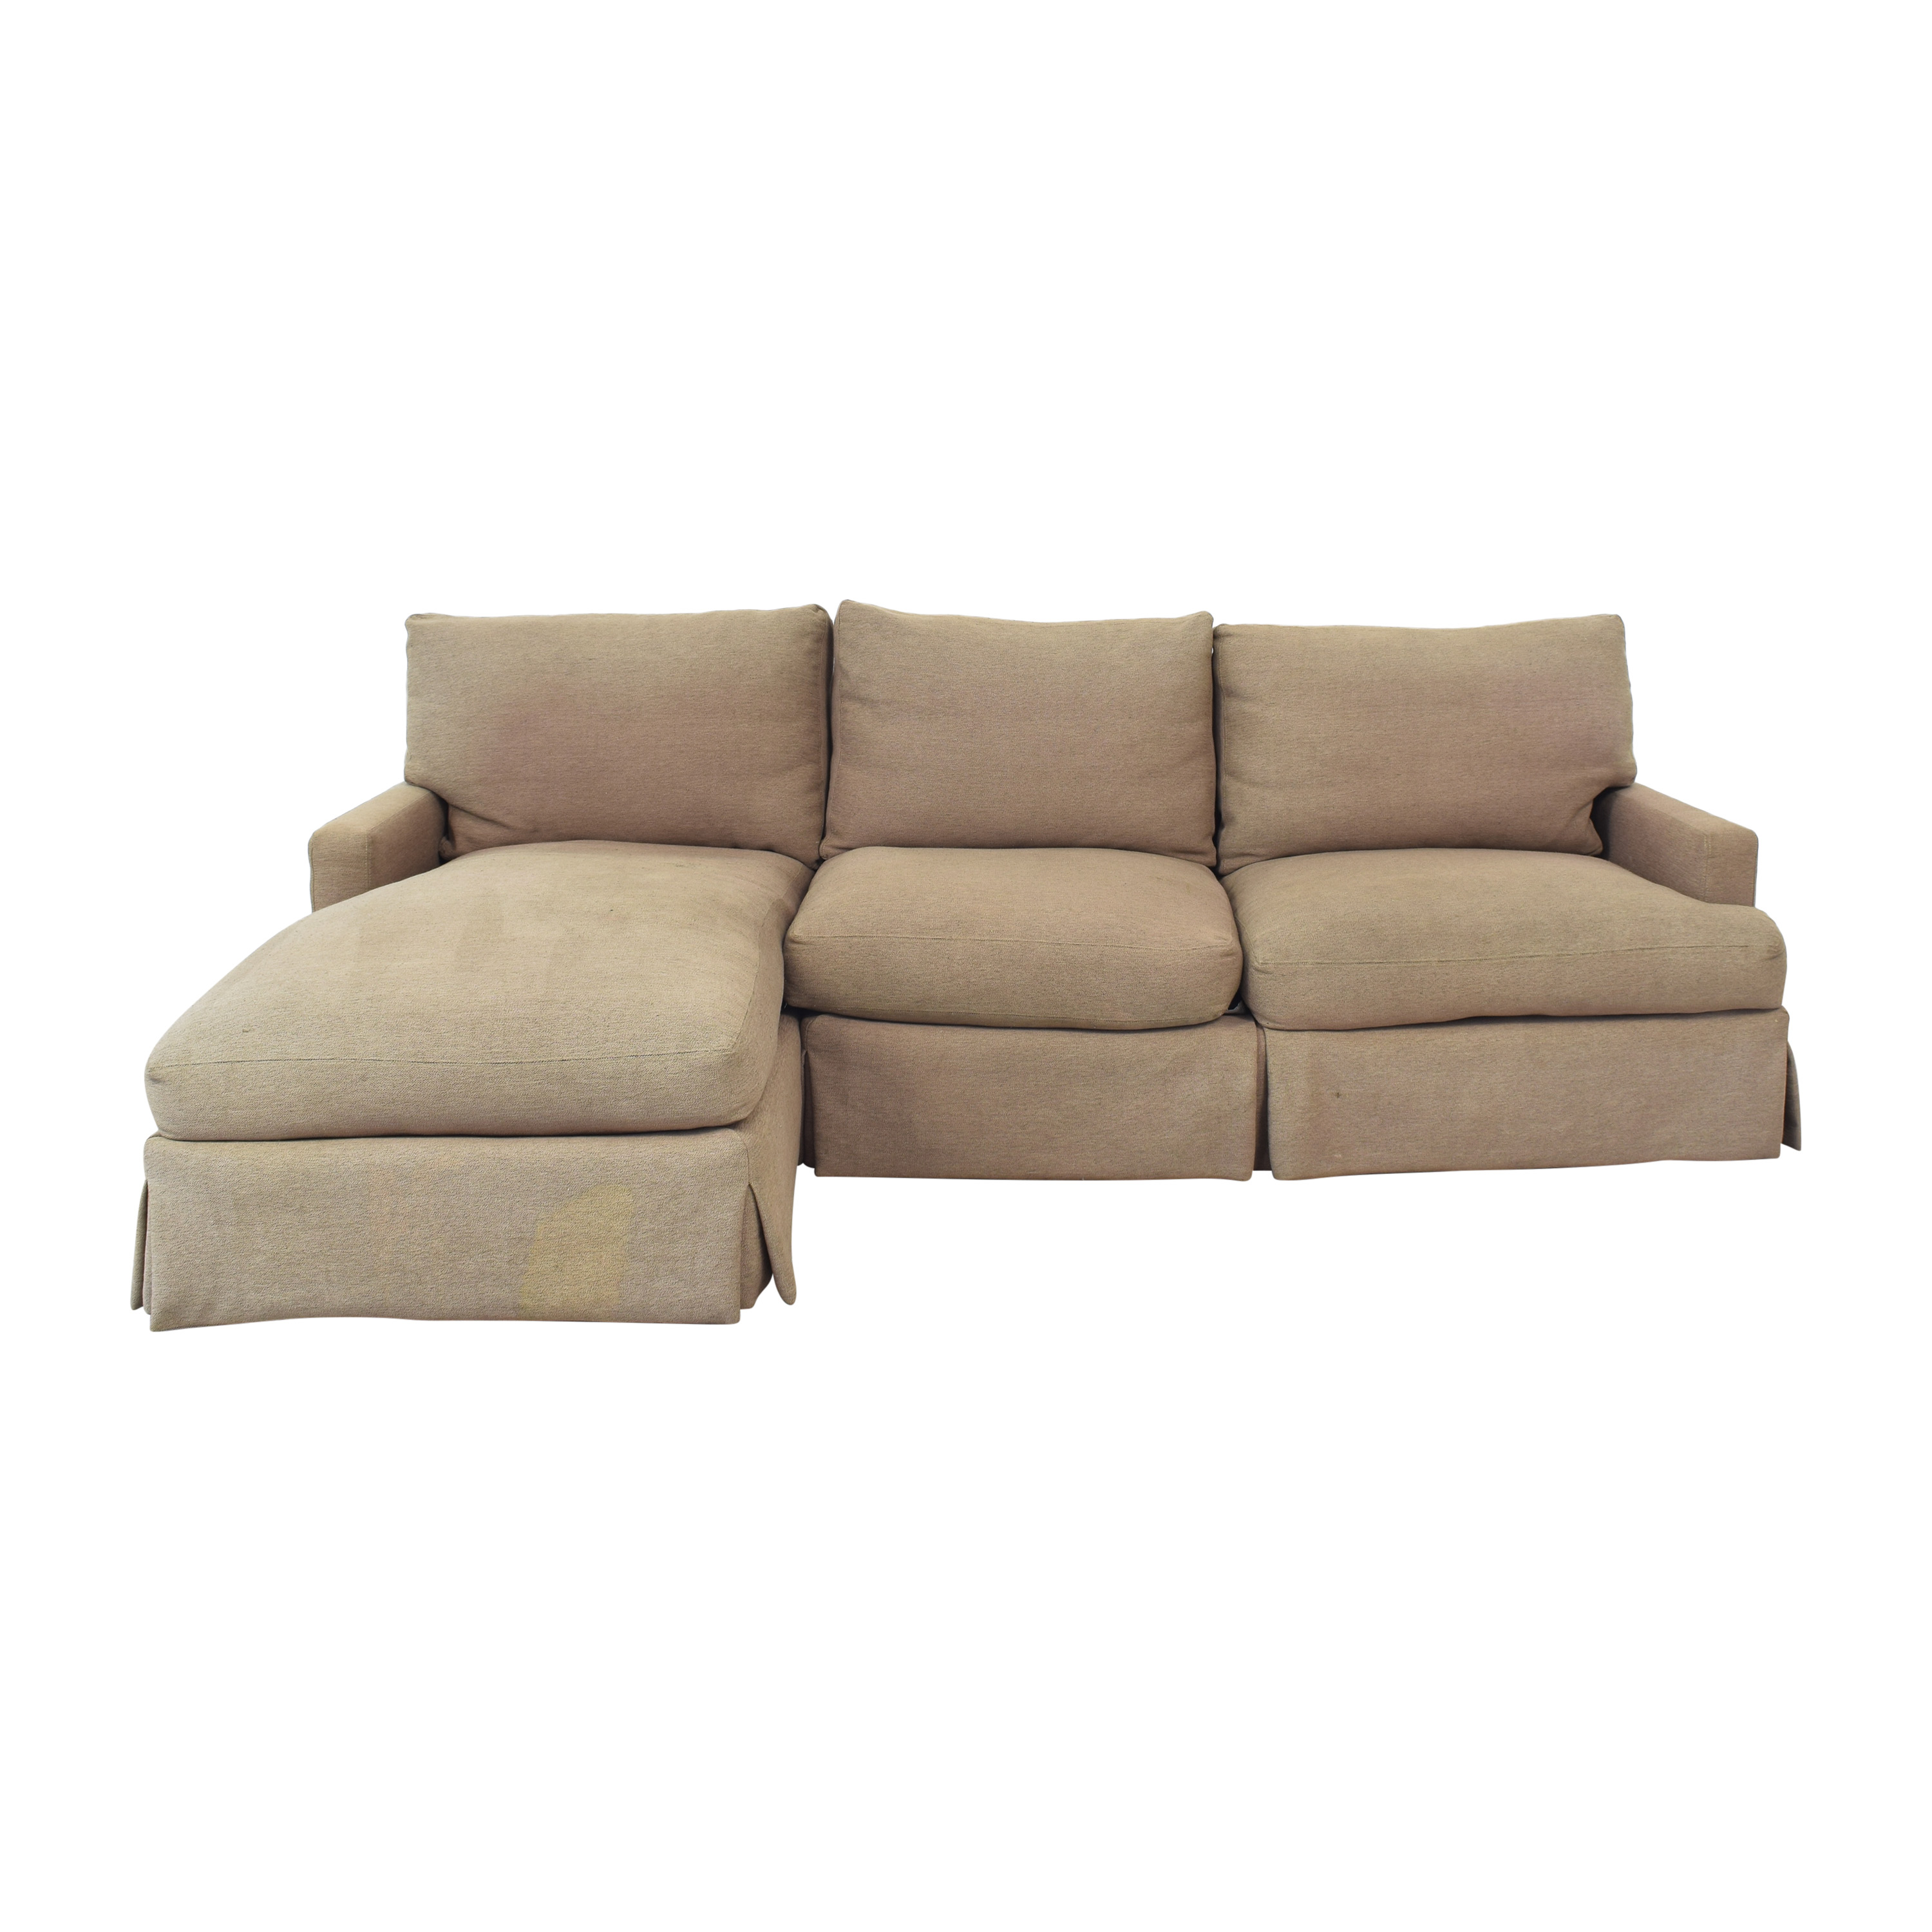 shop Lee Industries Lee Industries Slipcovered Sectional Sofa online